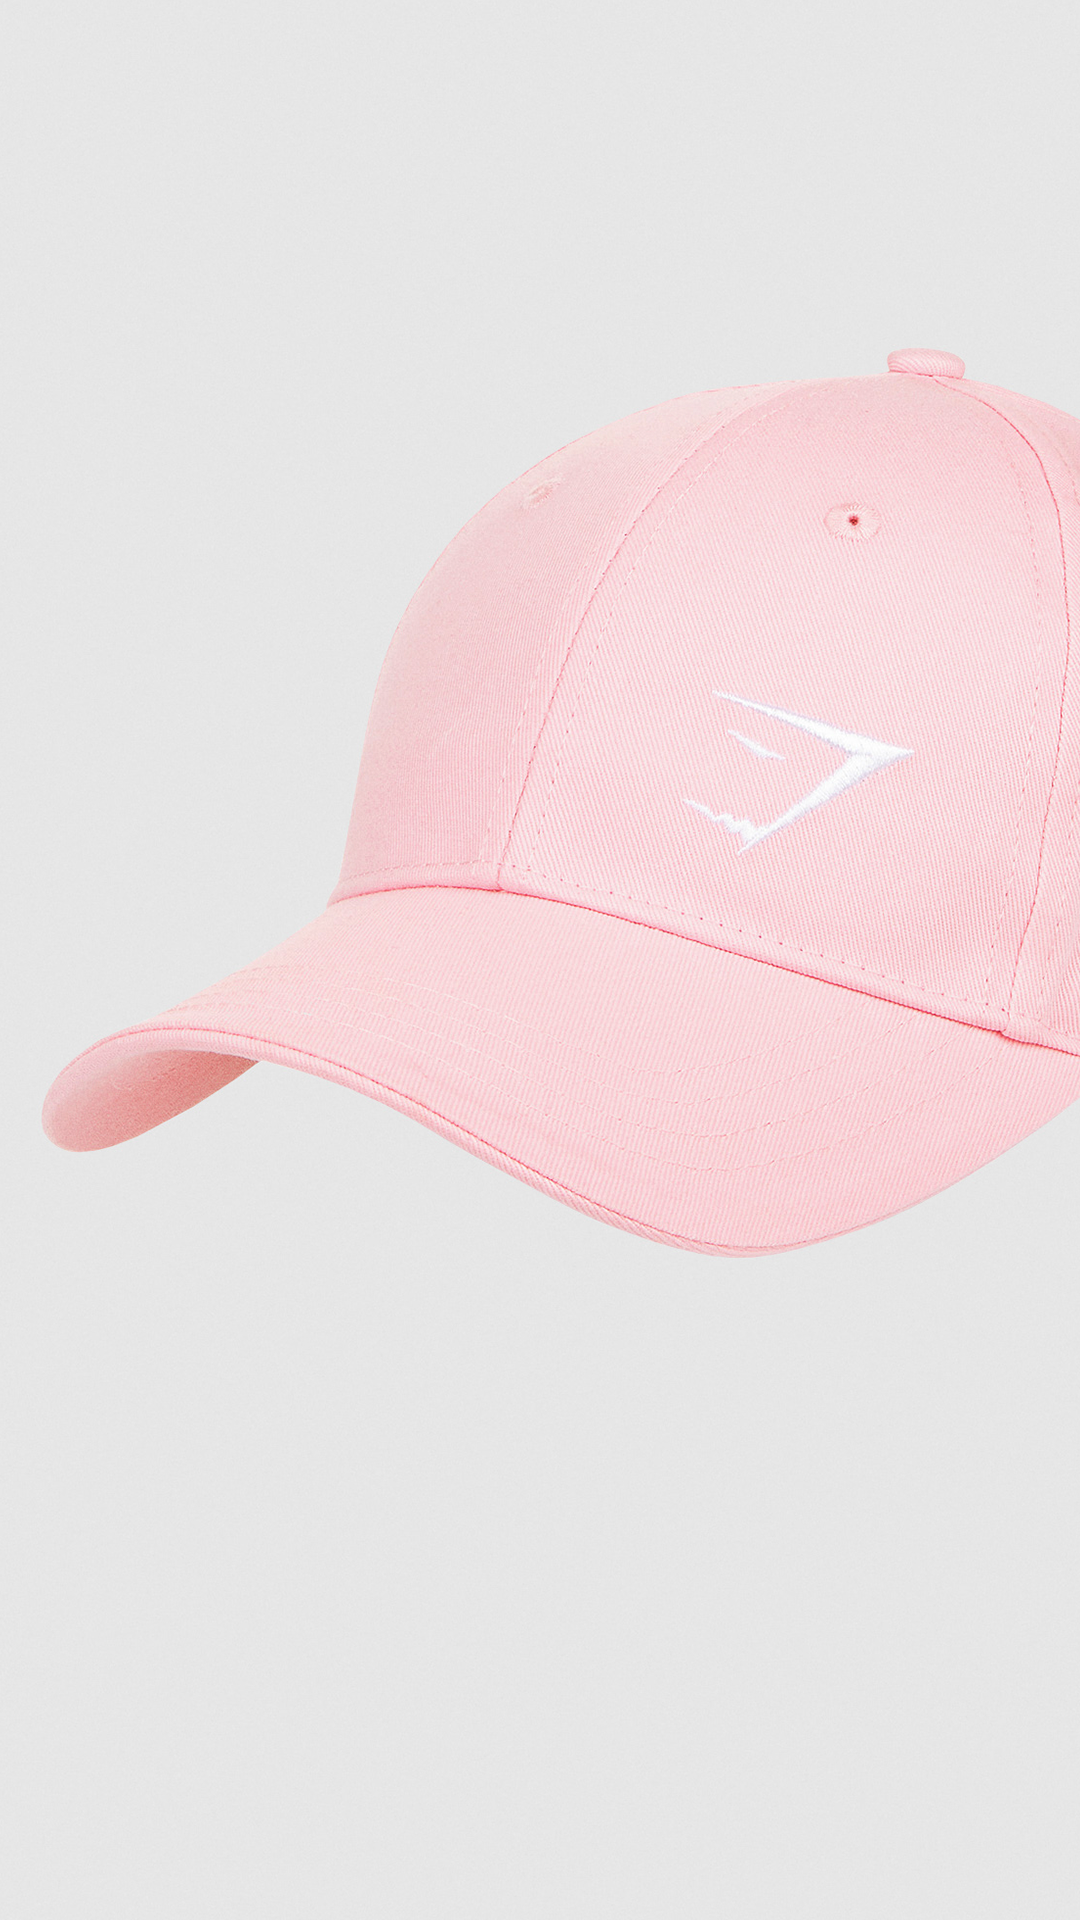 Gymshark  Accessories  Hat  Gym  Fitness  Workout  Exercise  Pink  Cap   Headwear  Monochrome 10841843096b7